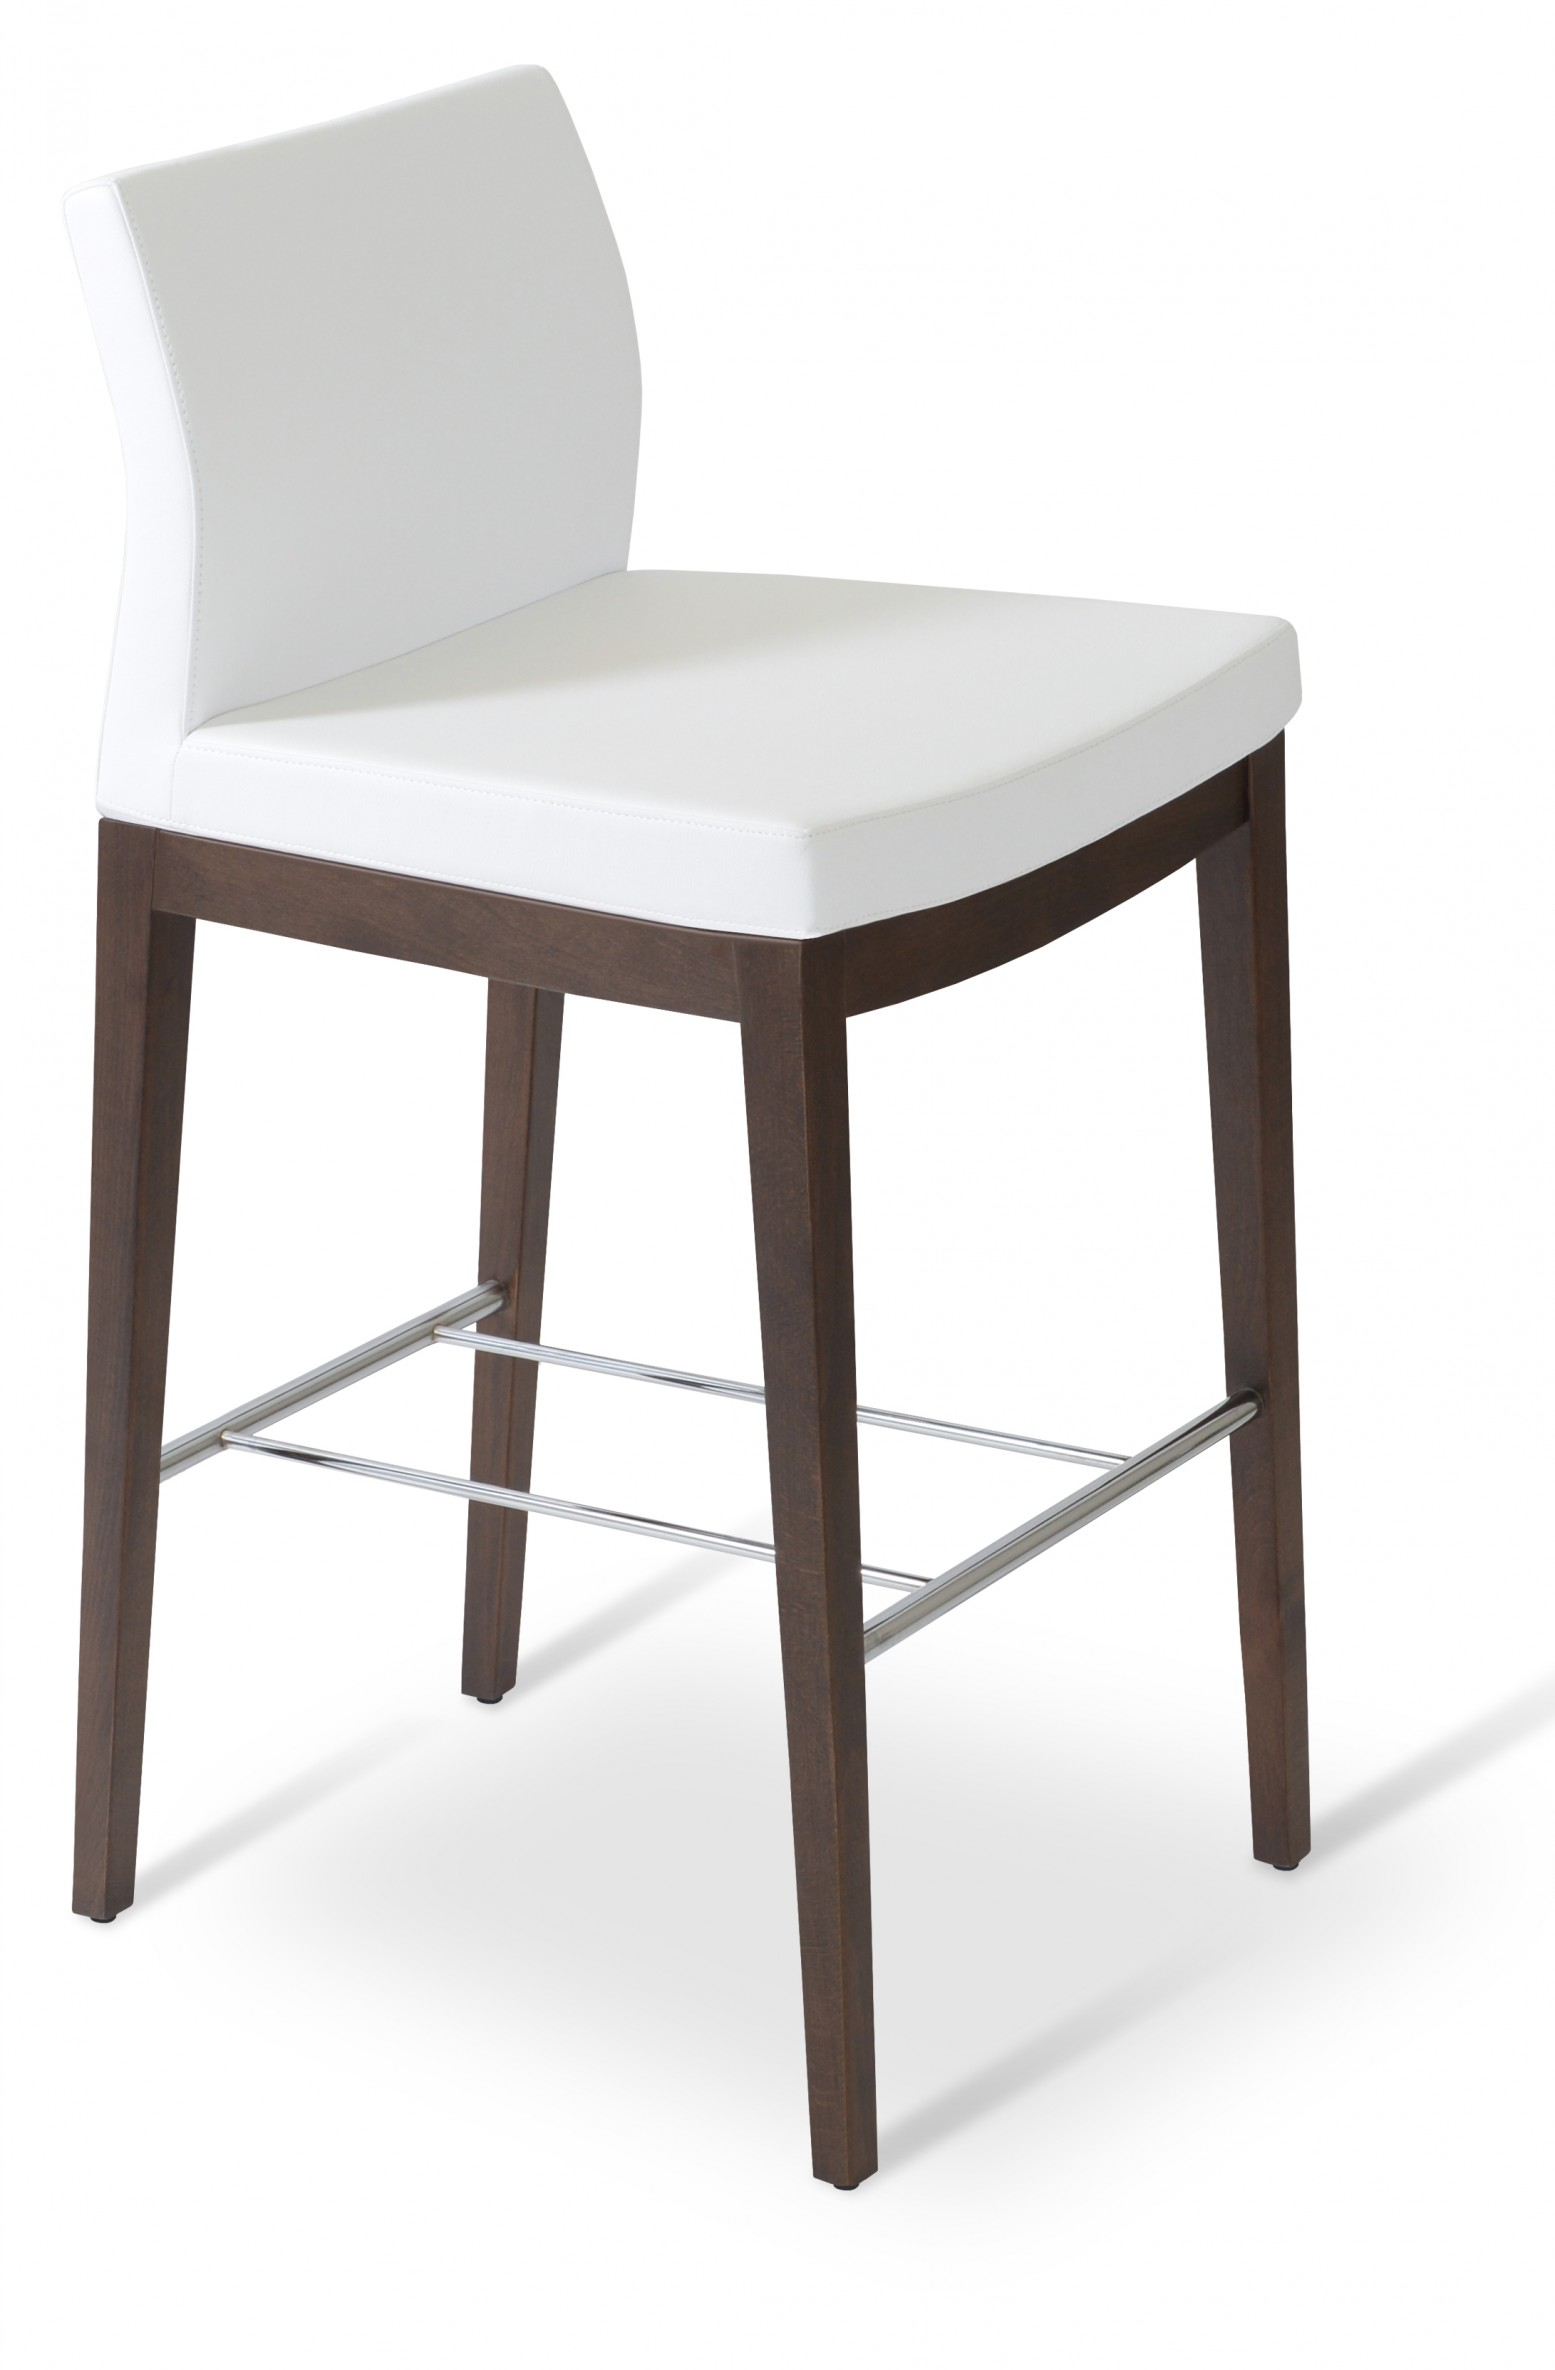 Picture of: Pasha Wood Bar Stool Solid Beech Walnut Color White Leatherette Low Back Set Of 4 By Sohoconcept Furniture